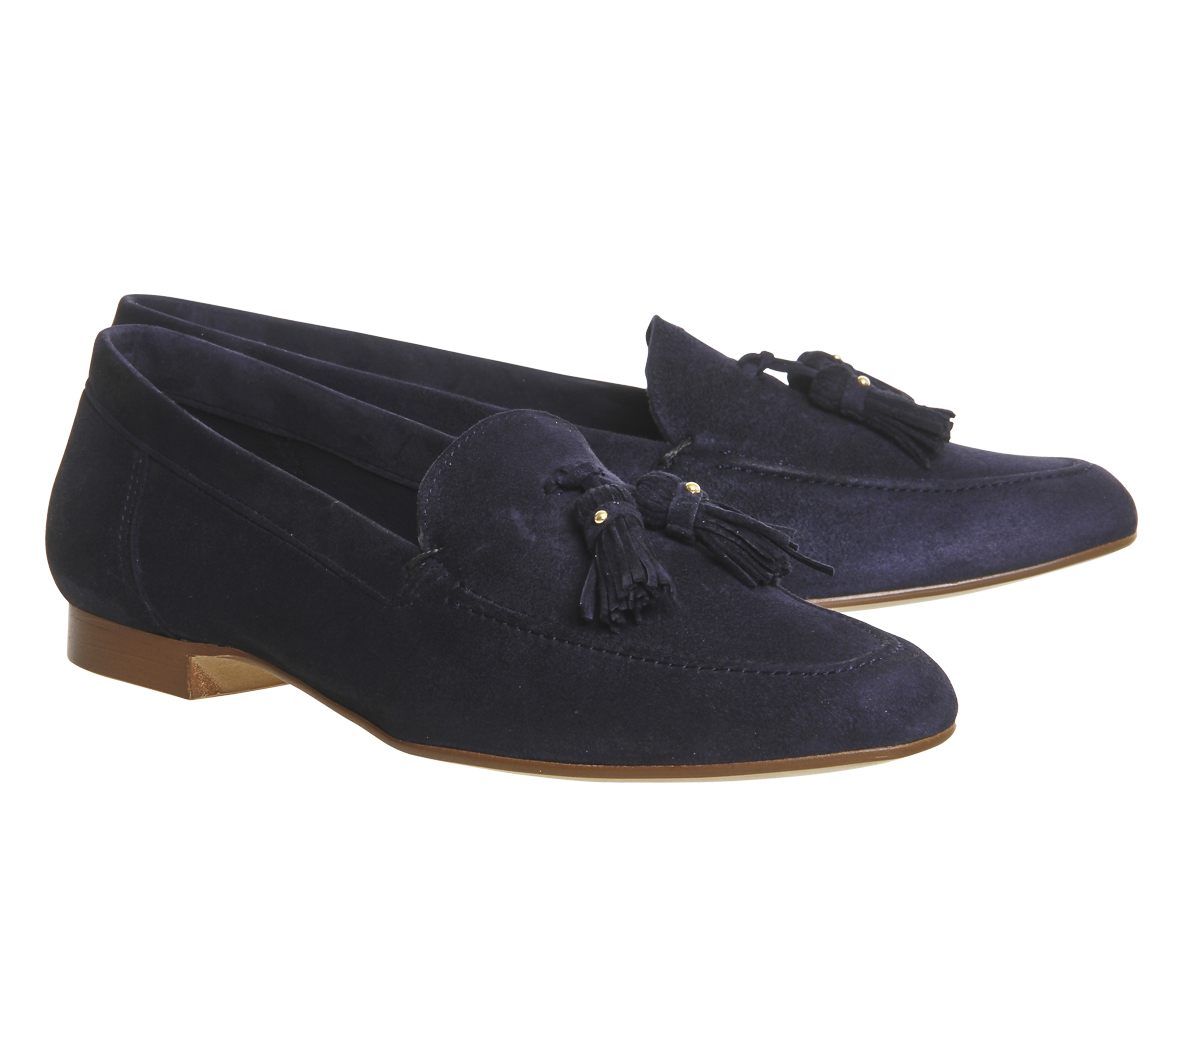 Damen-Office-Retro-Tassel-Loafers-Blau-NAVY-Wildleder-Flache-Schuhe